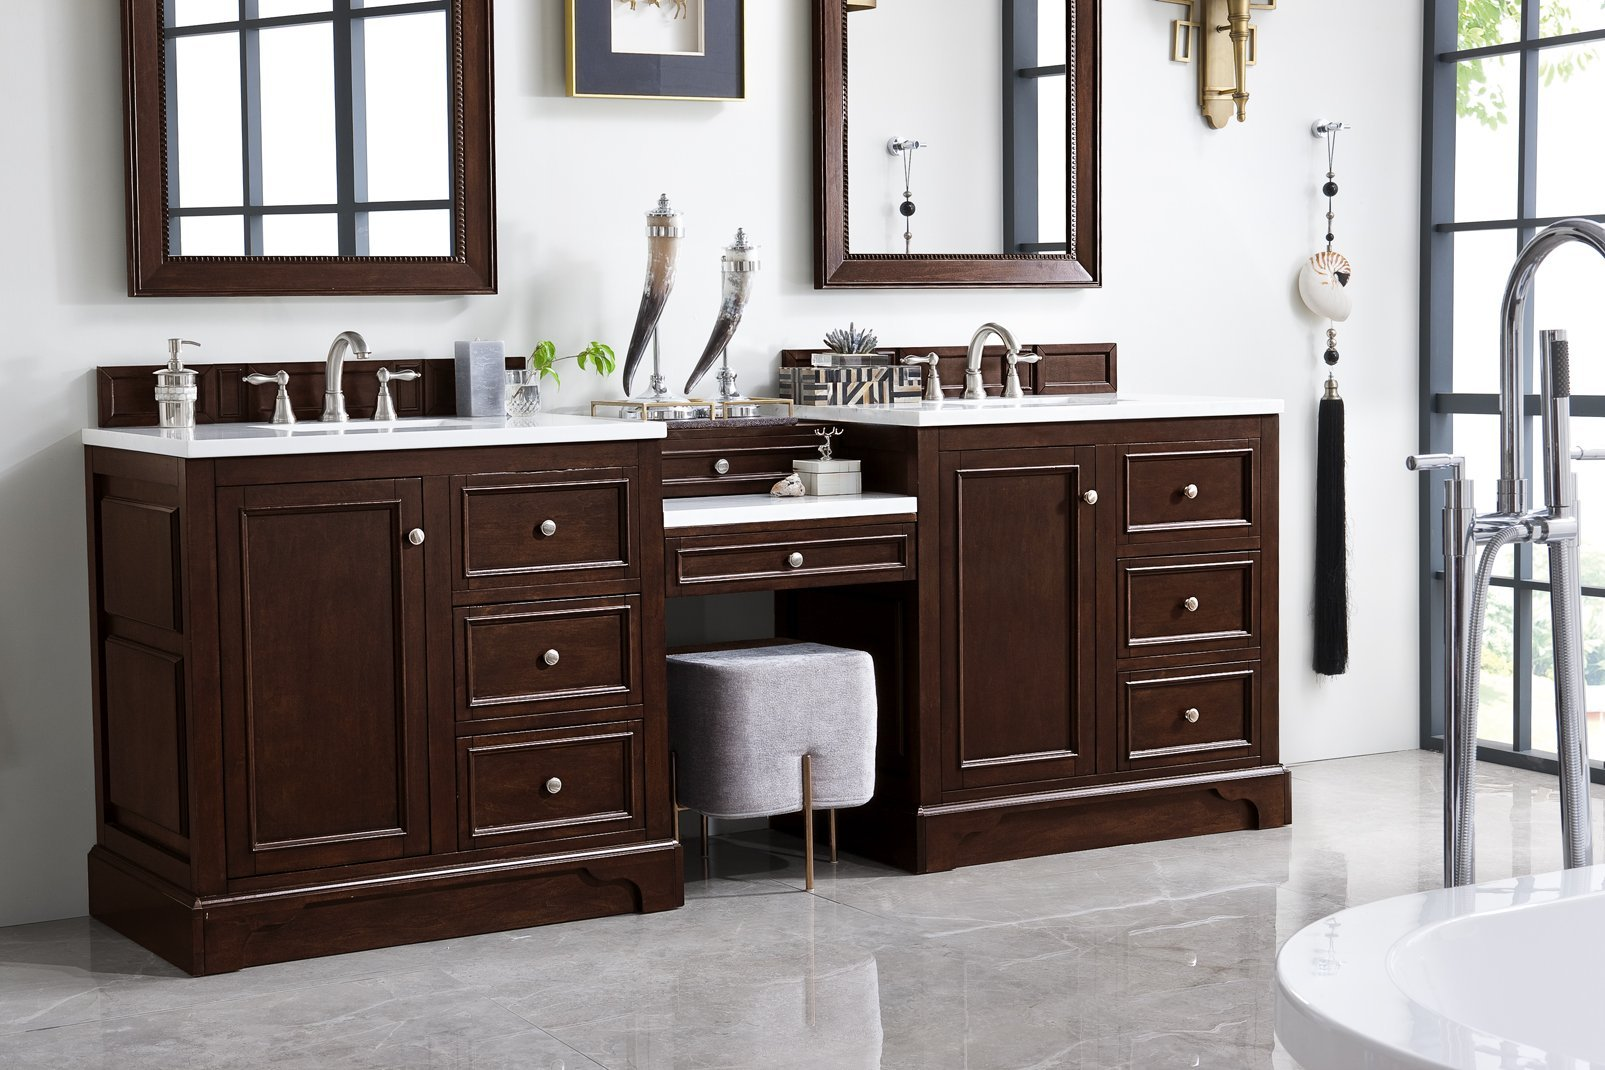 "De Soto 94"" Double Bathroom Vanity Double bathroom Vanity James Martin Vanities"